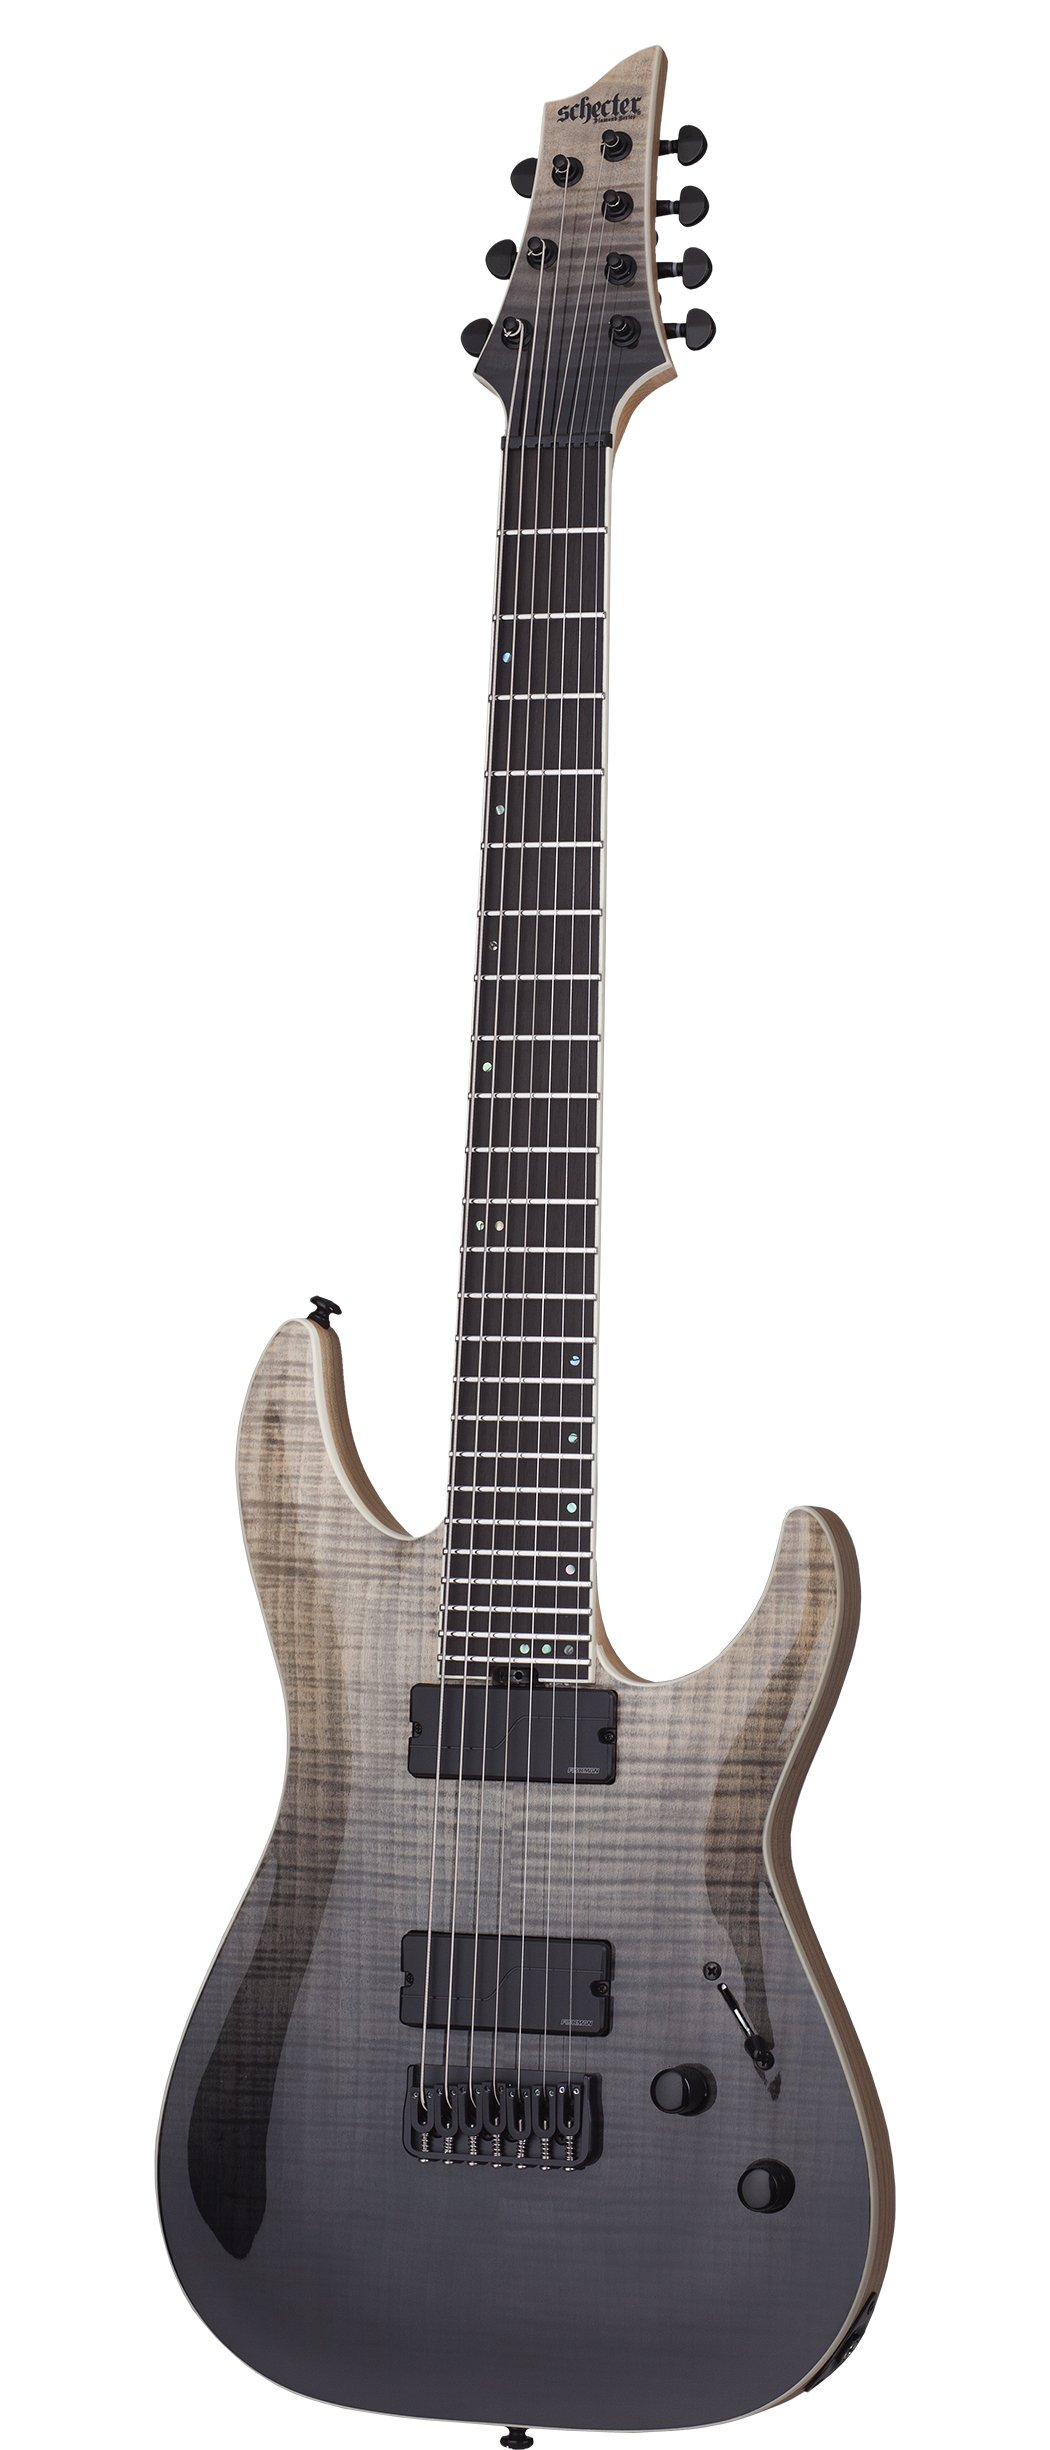 Cheap Schecter 7 String Solid-Body Electric Guitar Black Fade Burst (1355) Black Friday & Cyber Monday 2019